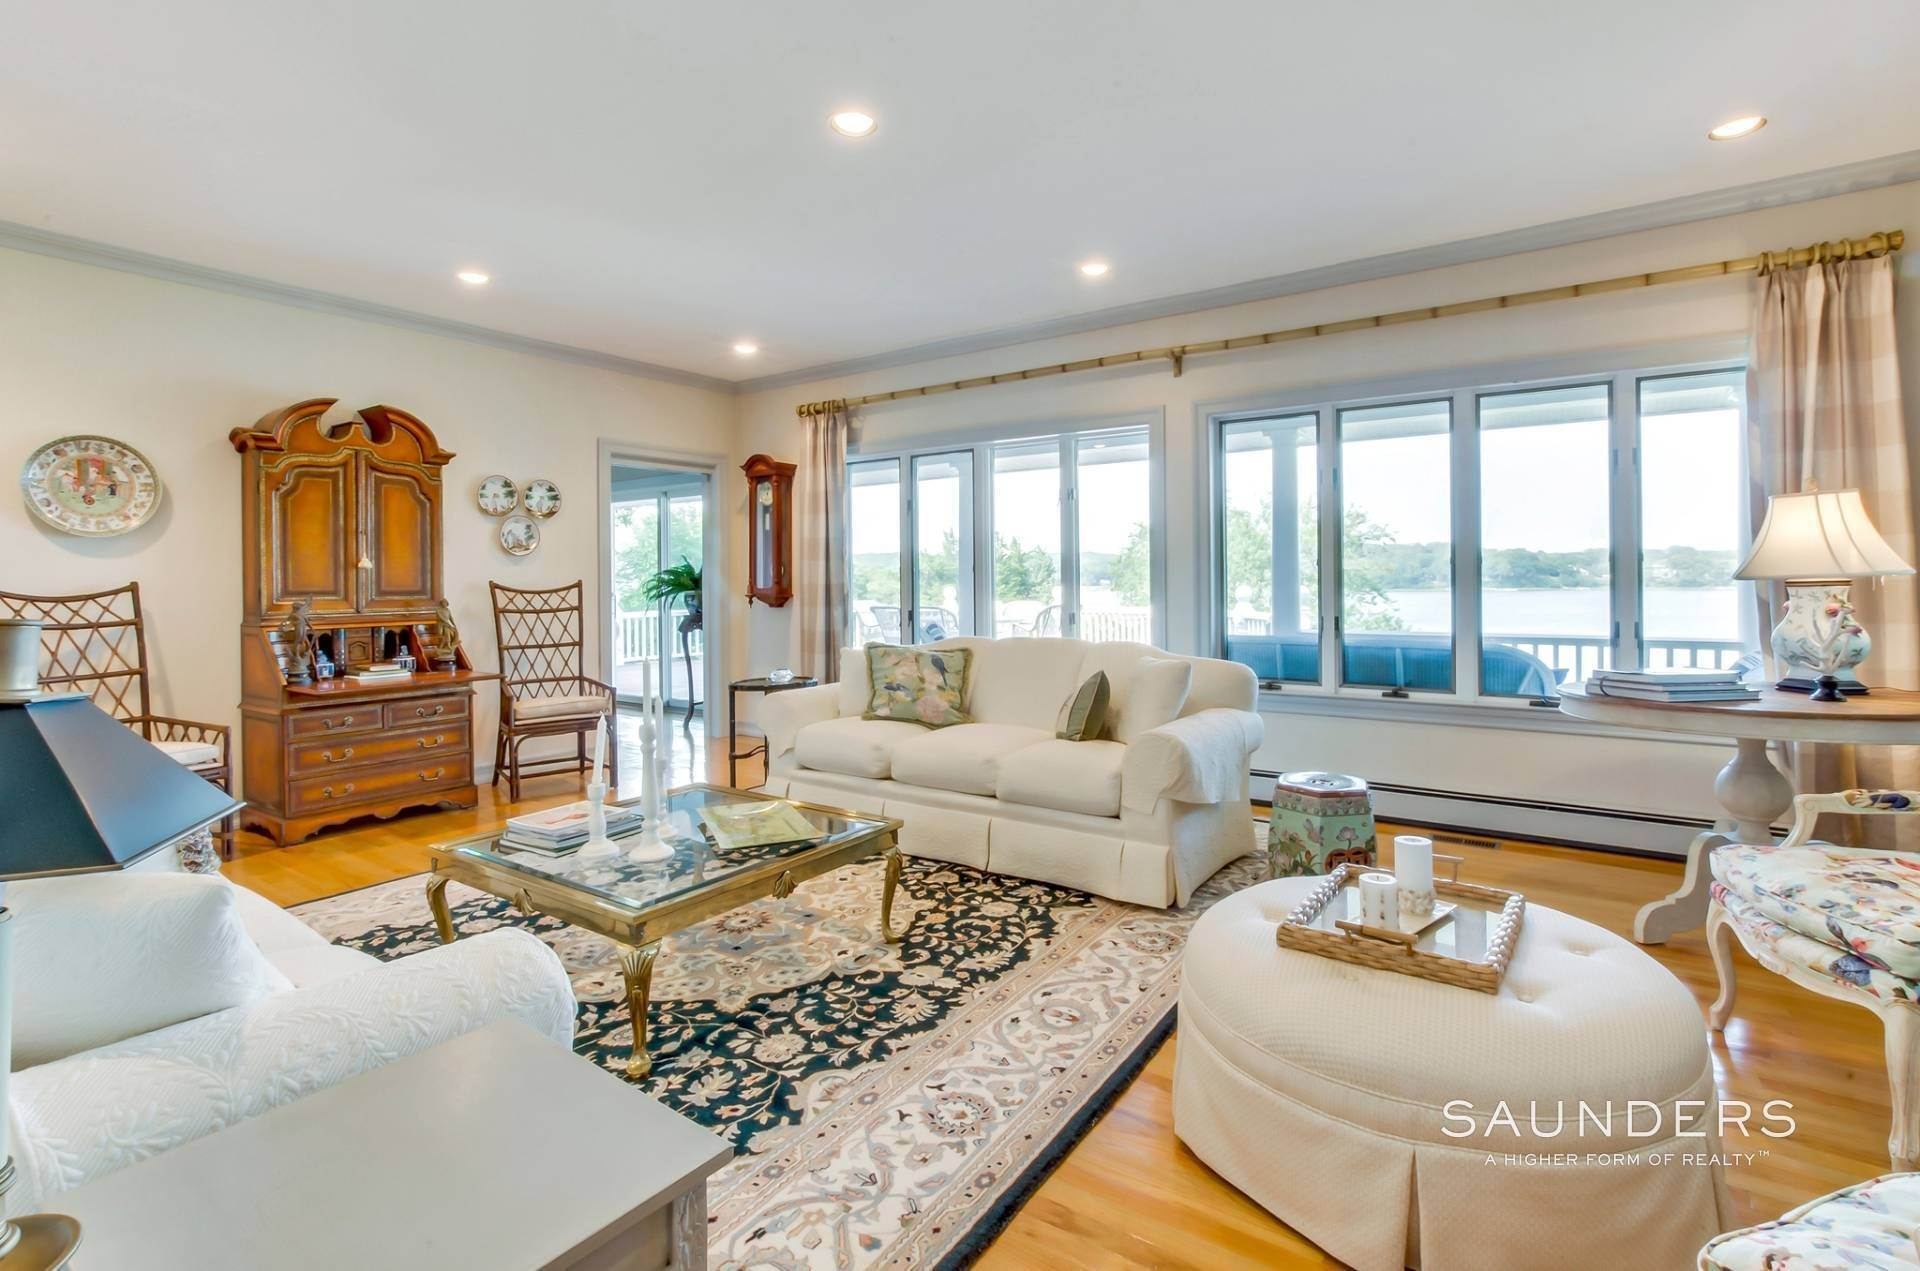 5. Single Family Homes for Sale at Estate Section Compound With Deep Water Dock, Sandy Beach, Pool 58 Westmoreland Drive, Shelter Island Heights, Shelter Island, NY 11964